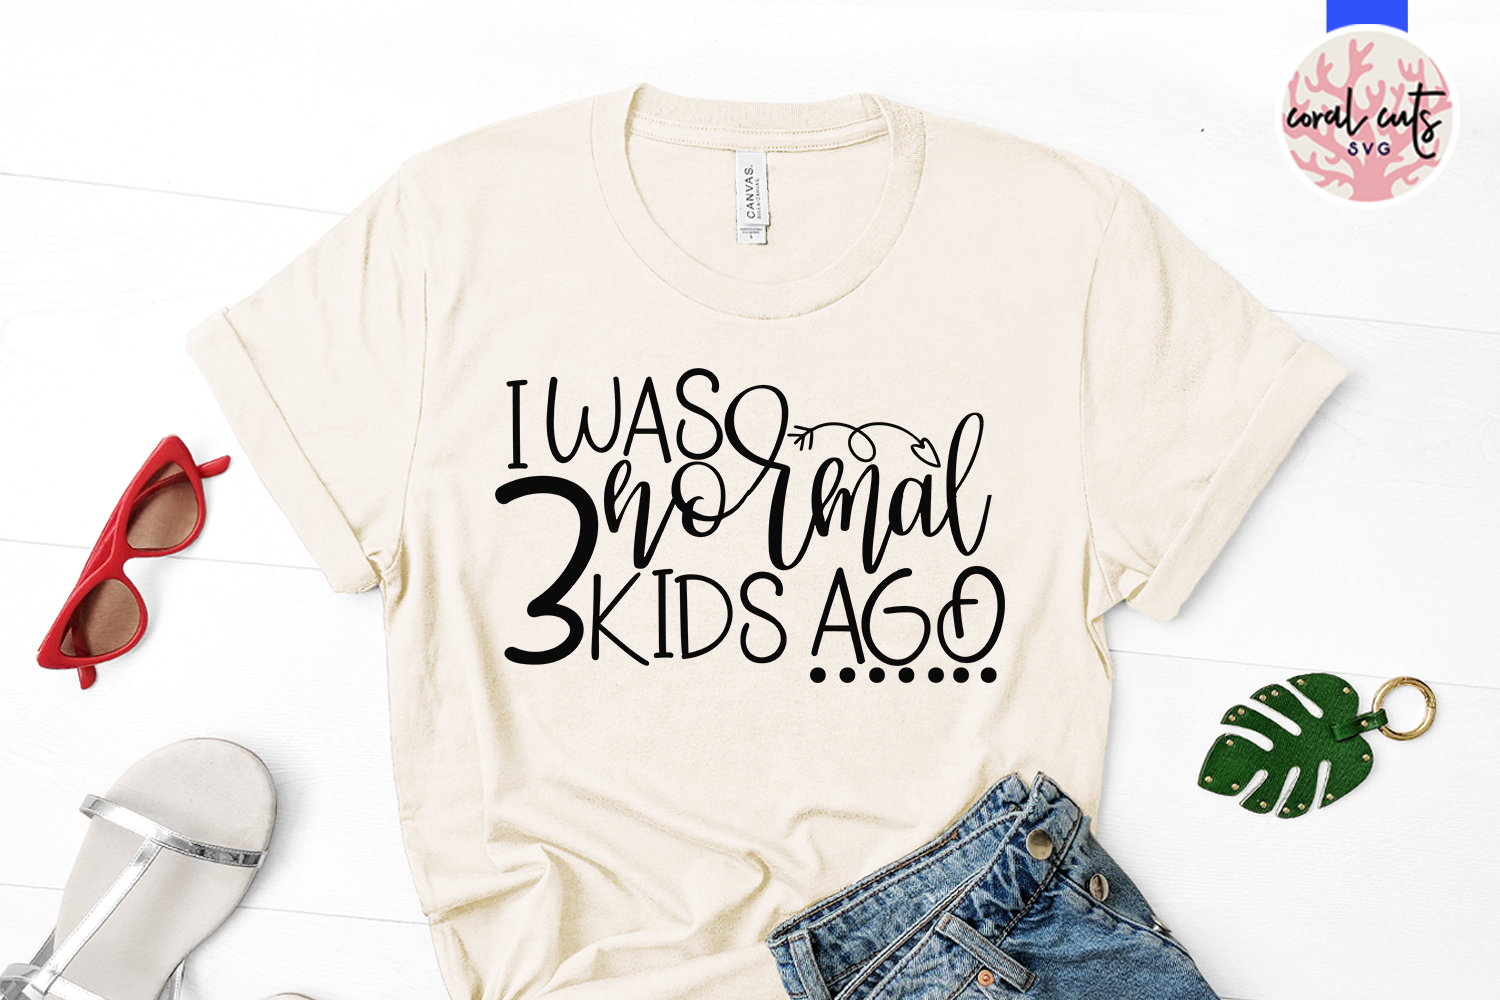 I was normal 3 kids ago - Mother SVG EPS DXF PNG Cut File example image 2